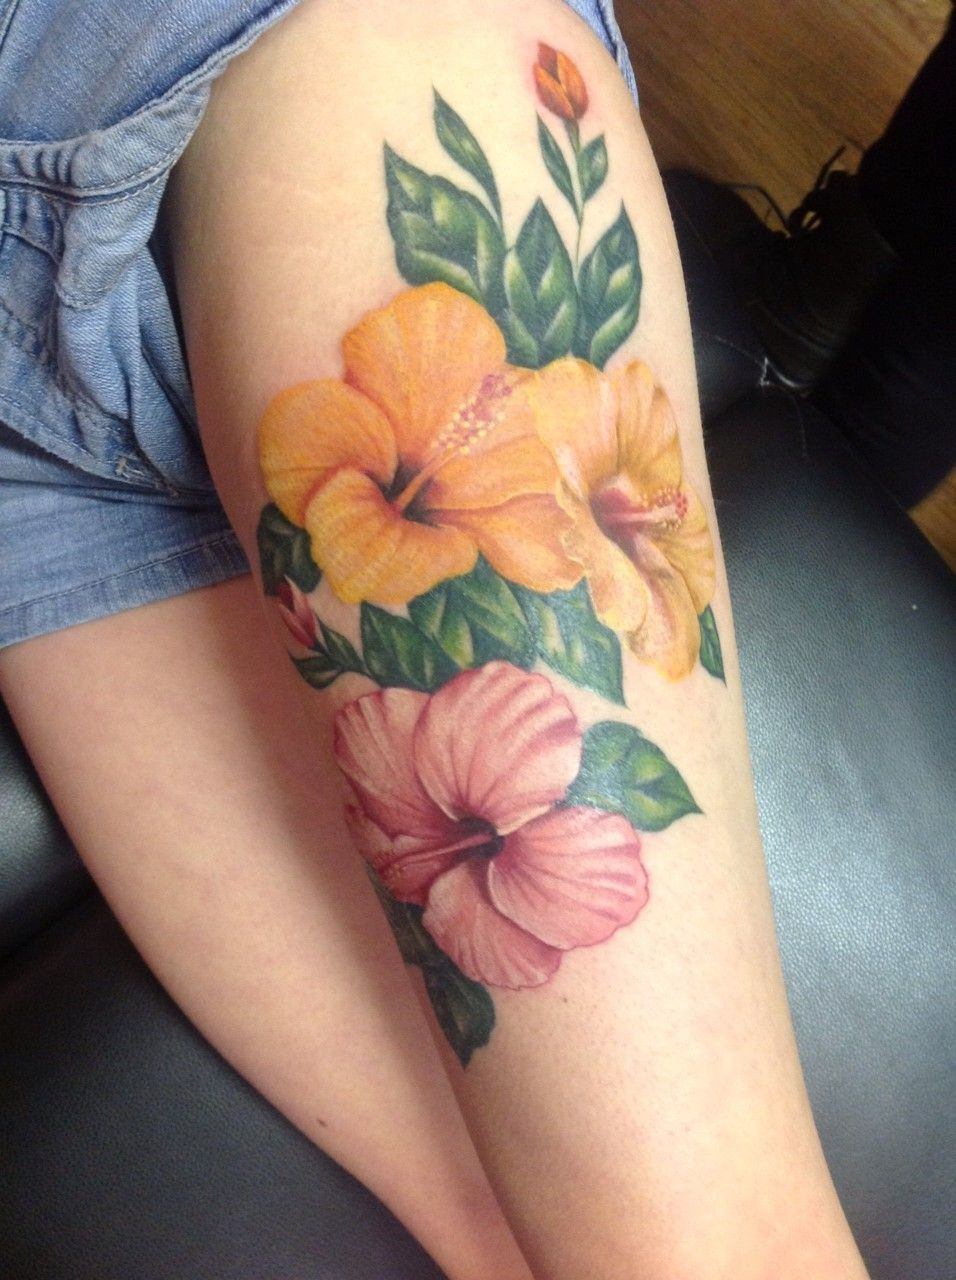 Dani Mawby Tattoo Hibiscus Flowers On Thigh In A Beautiful